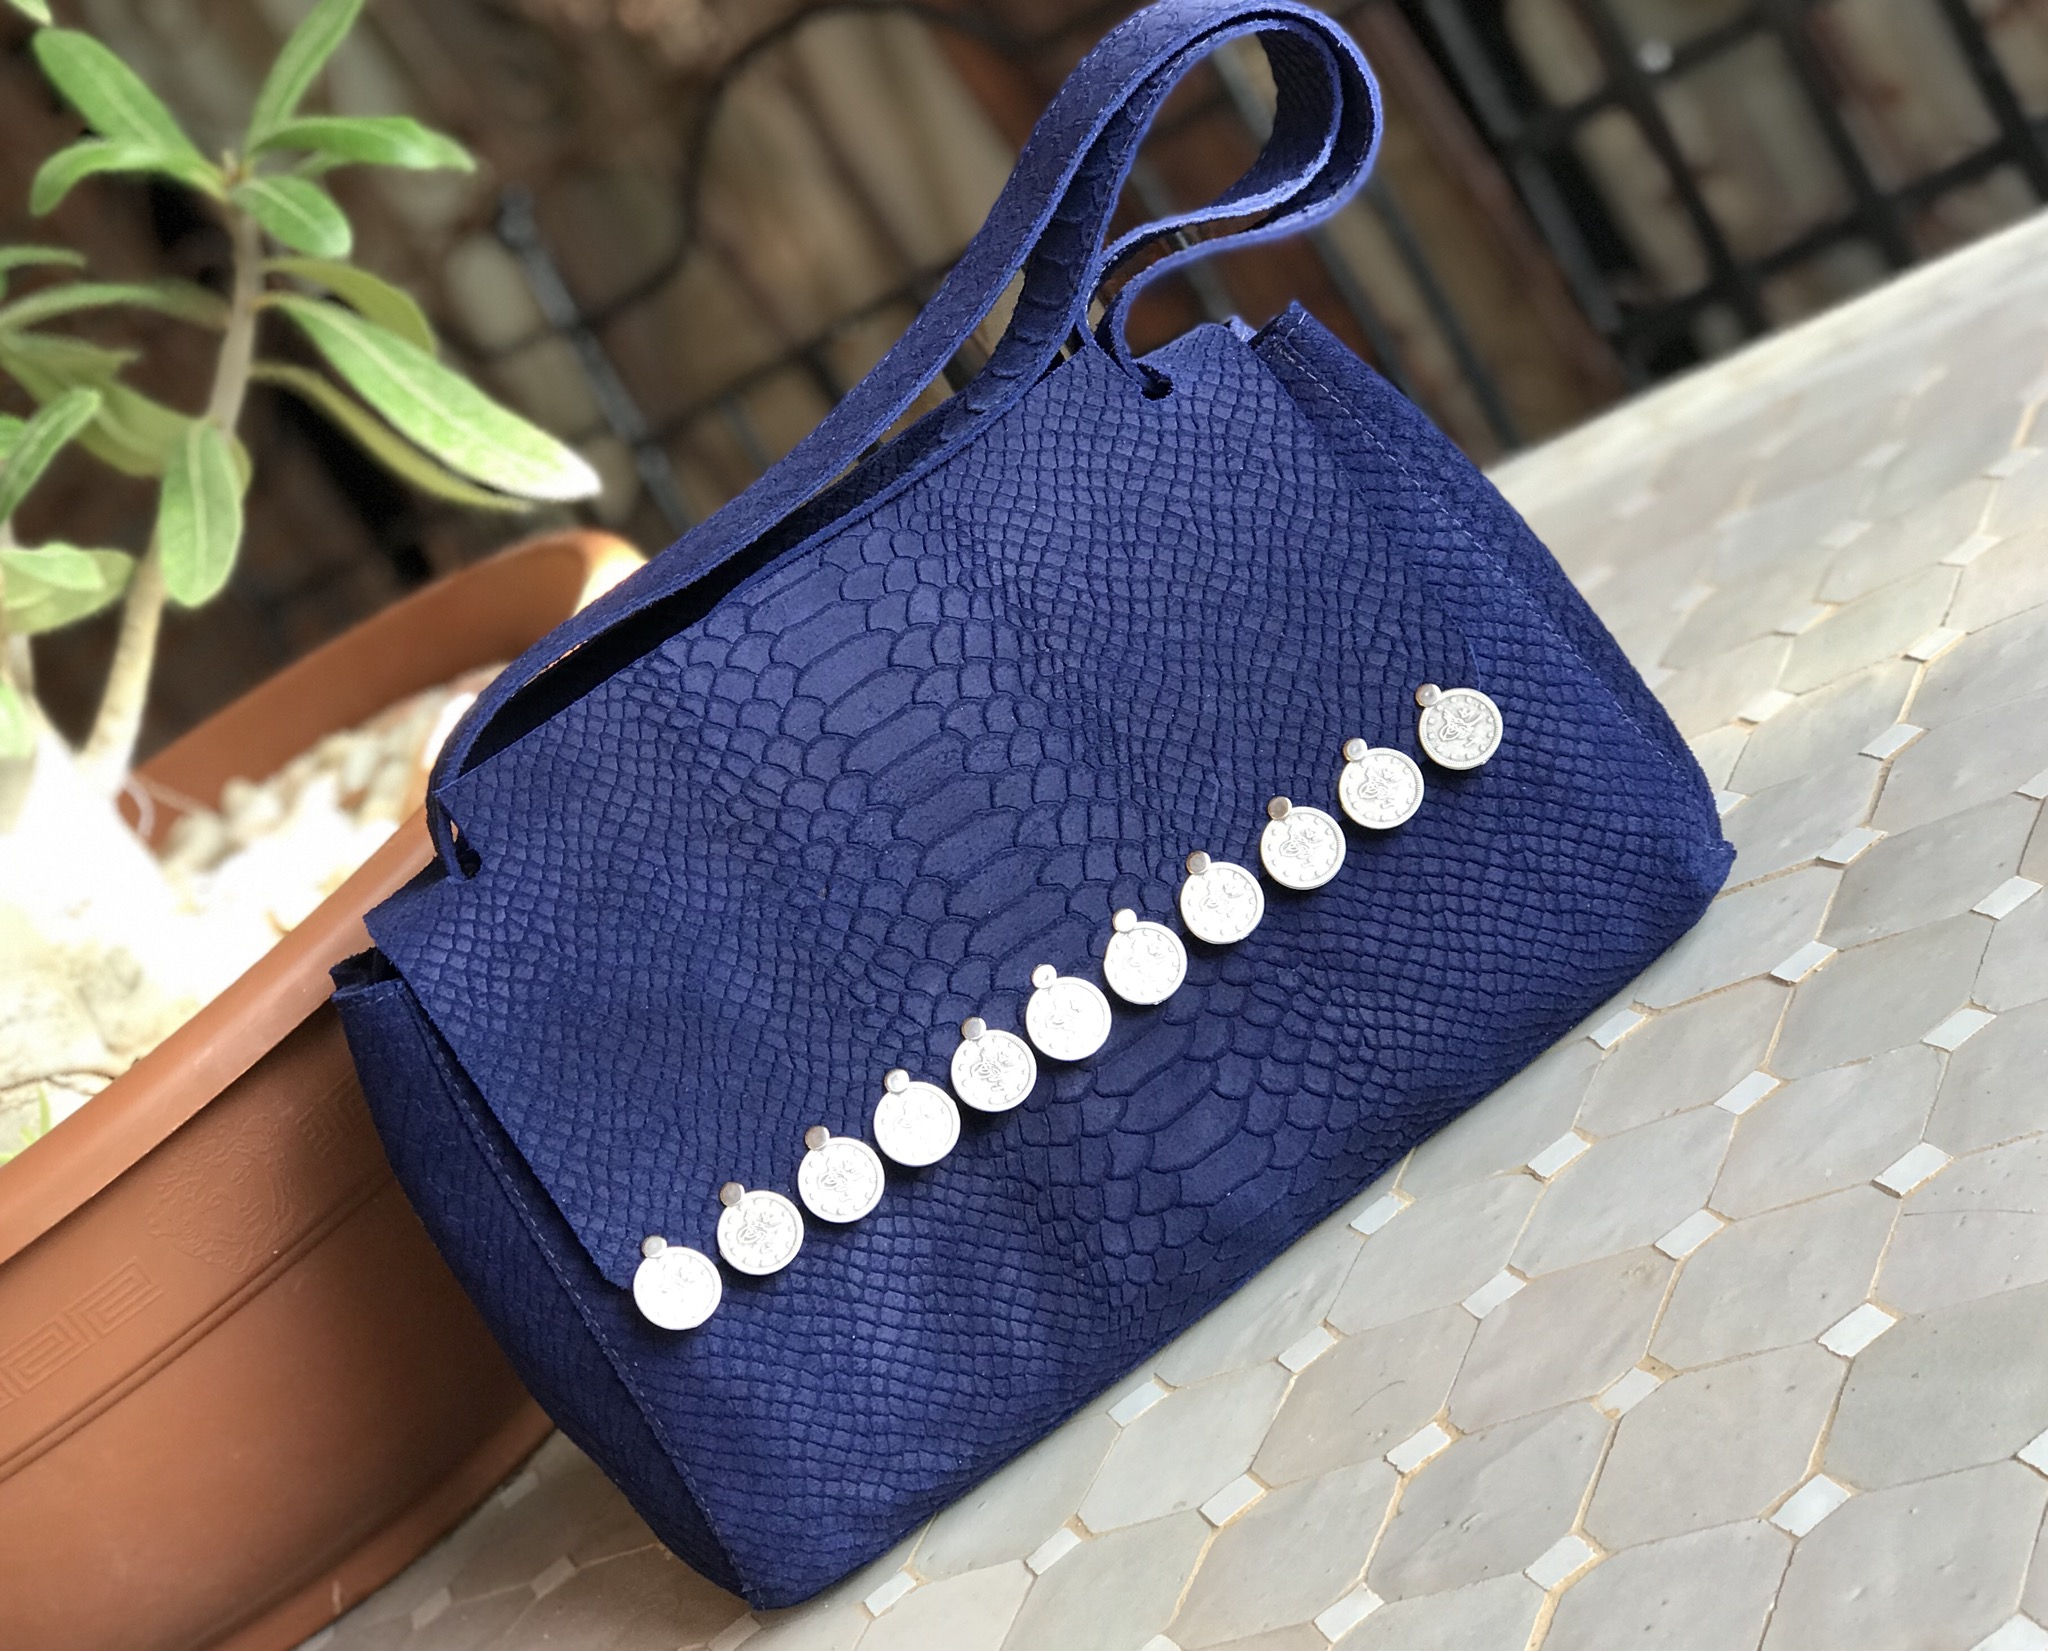 Bag suede leather blue majorelle medium size with coins